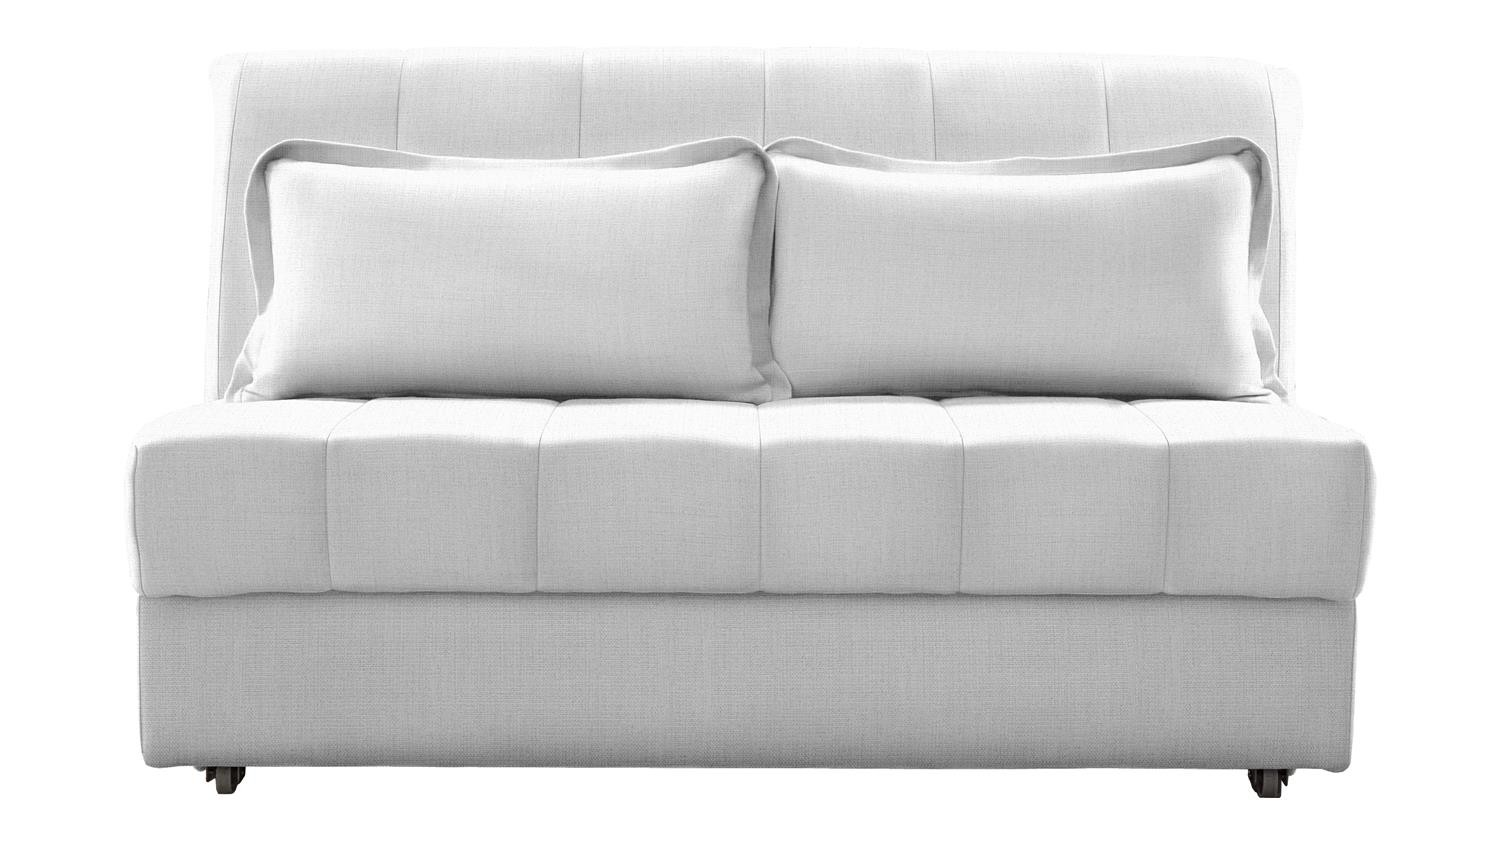 The Appley 3 Seater Sofa Bed